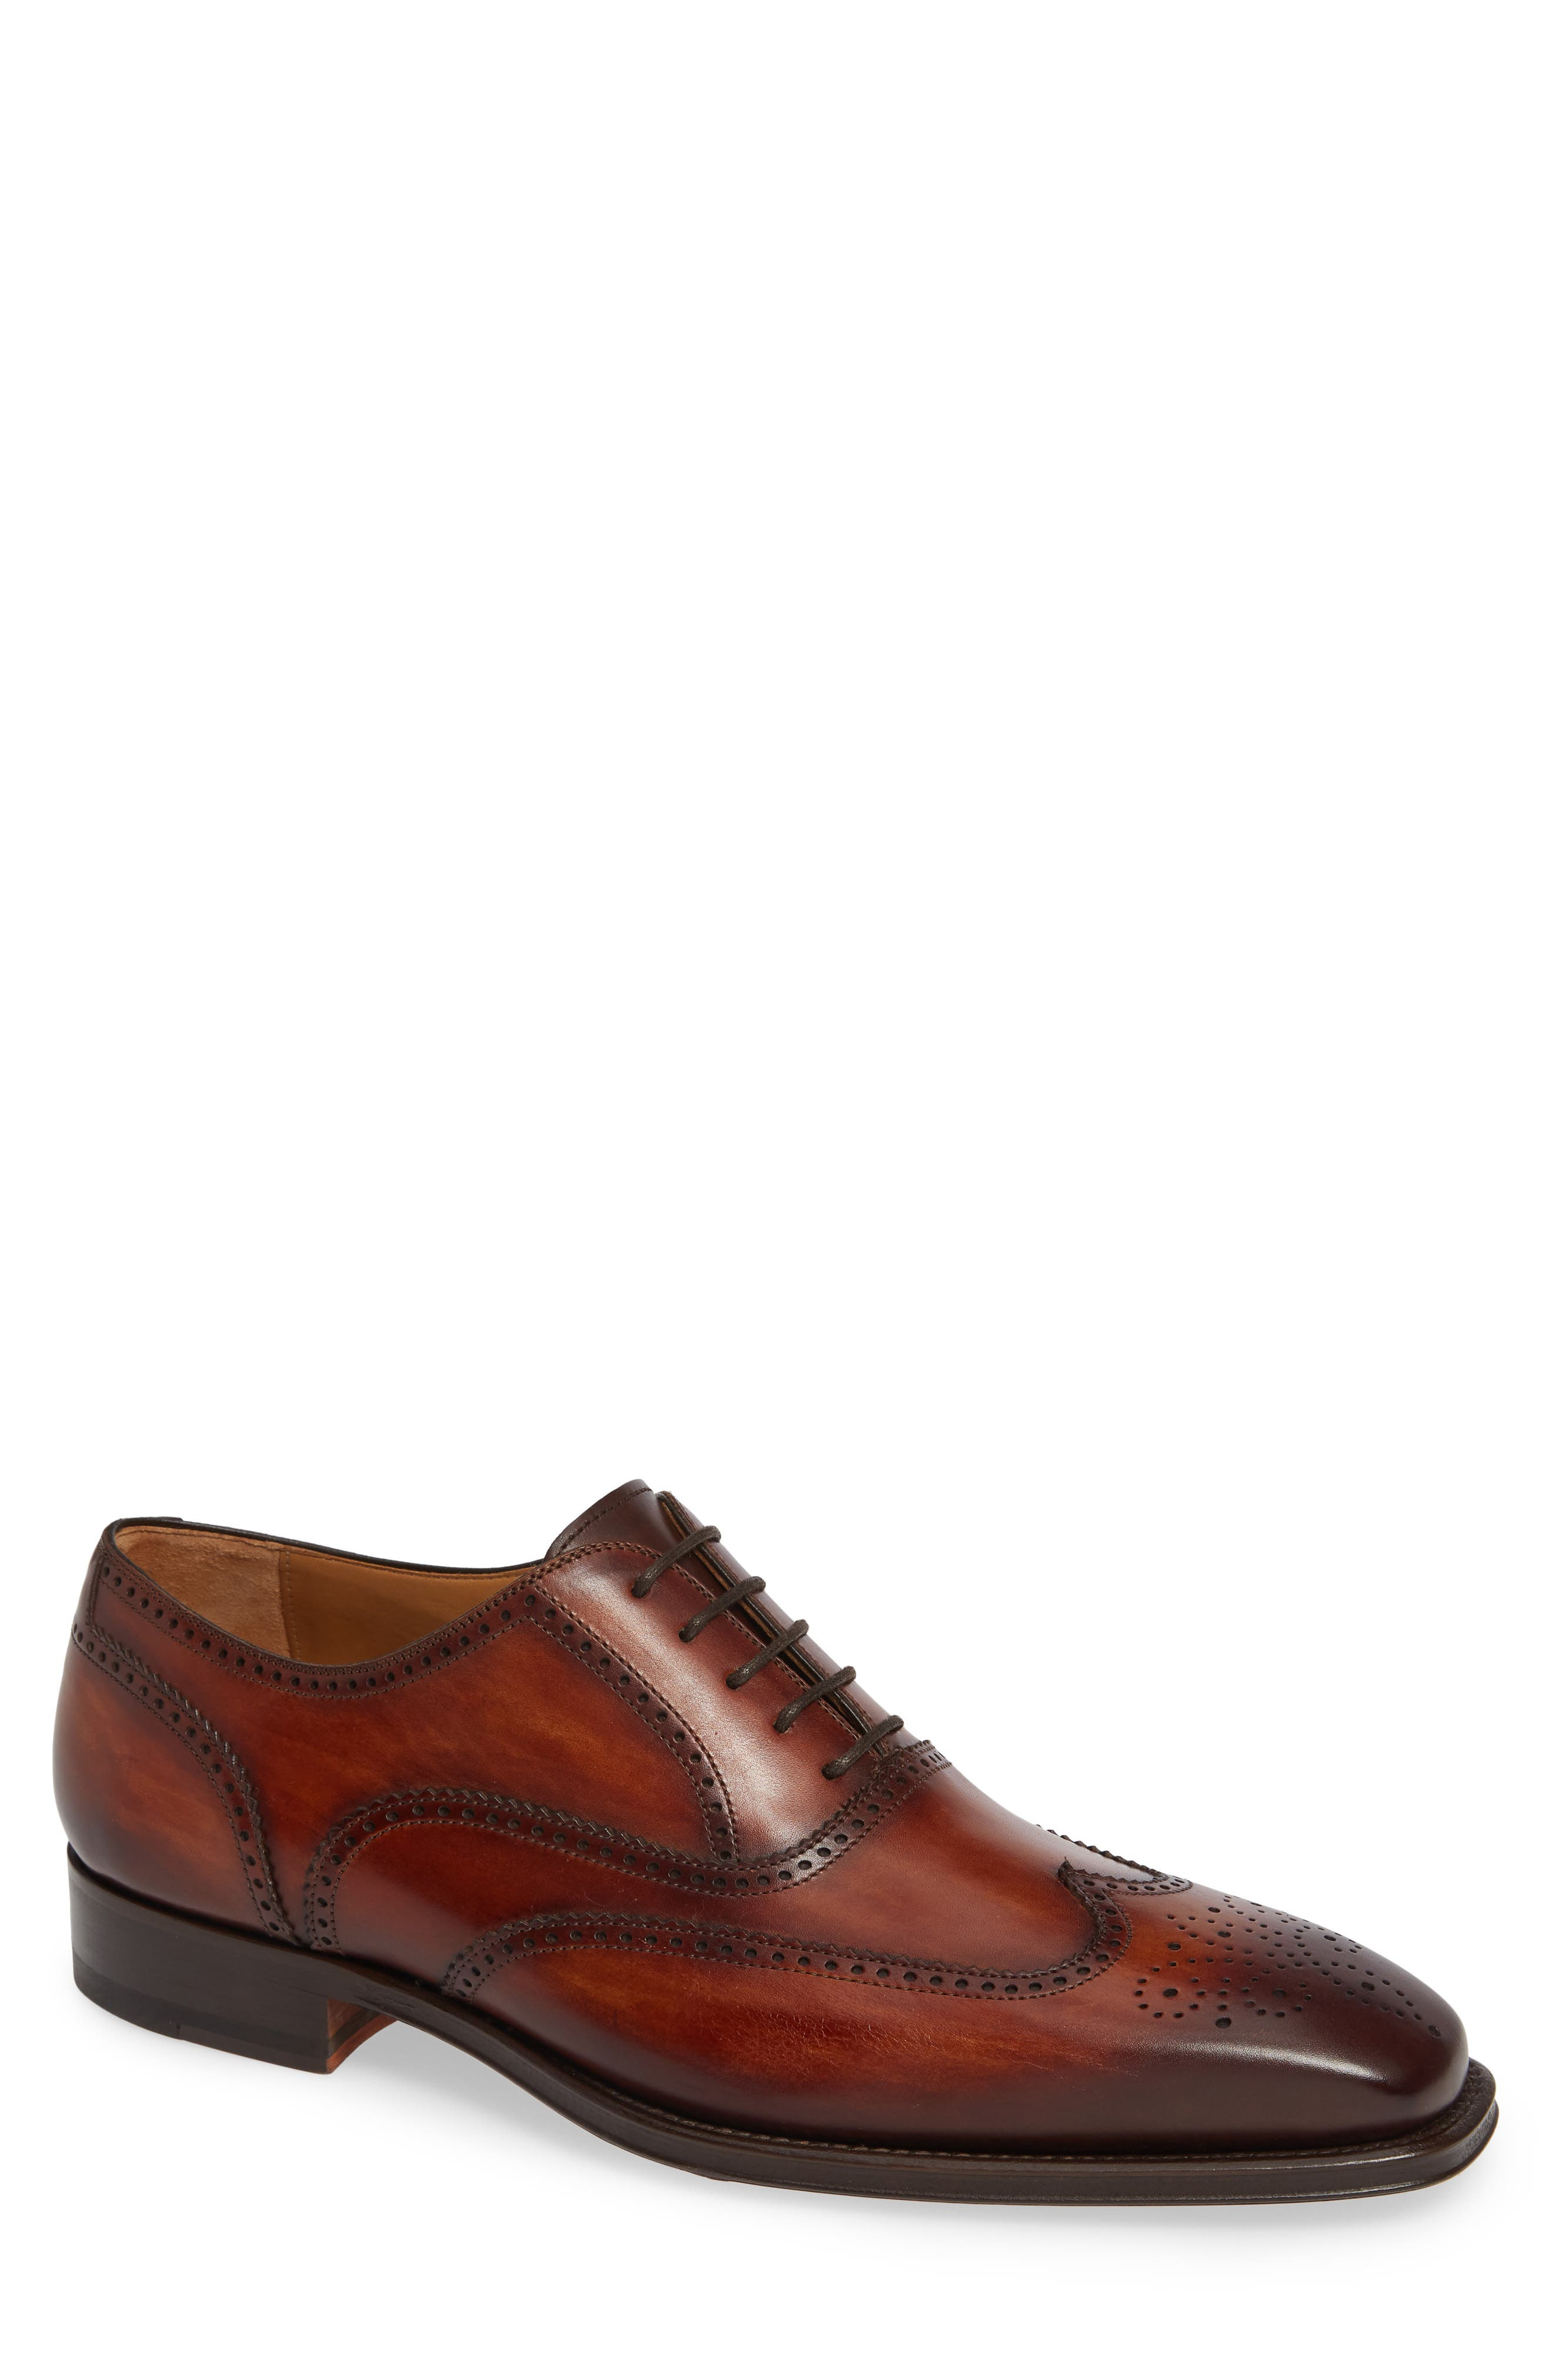 Ledger Wingtip,                         Main,                         color, COGNAC LEATHER